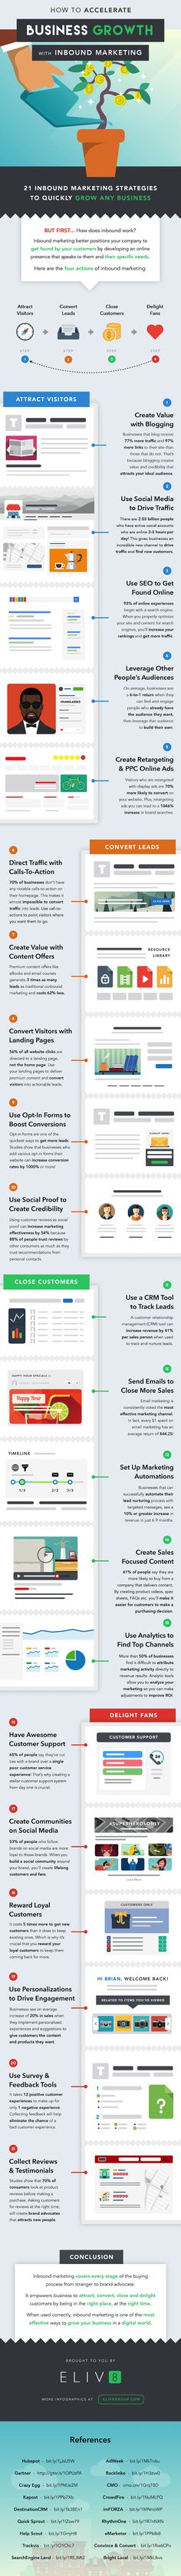 21 Essential Strategies for Growing Your Business With Inbound Marketing [Infographic]